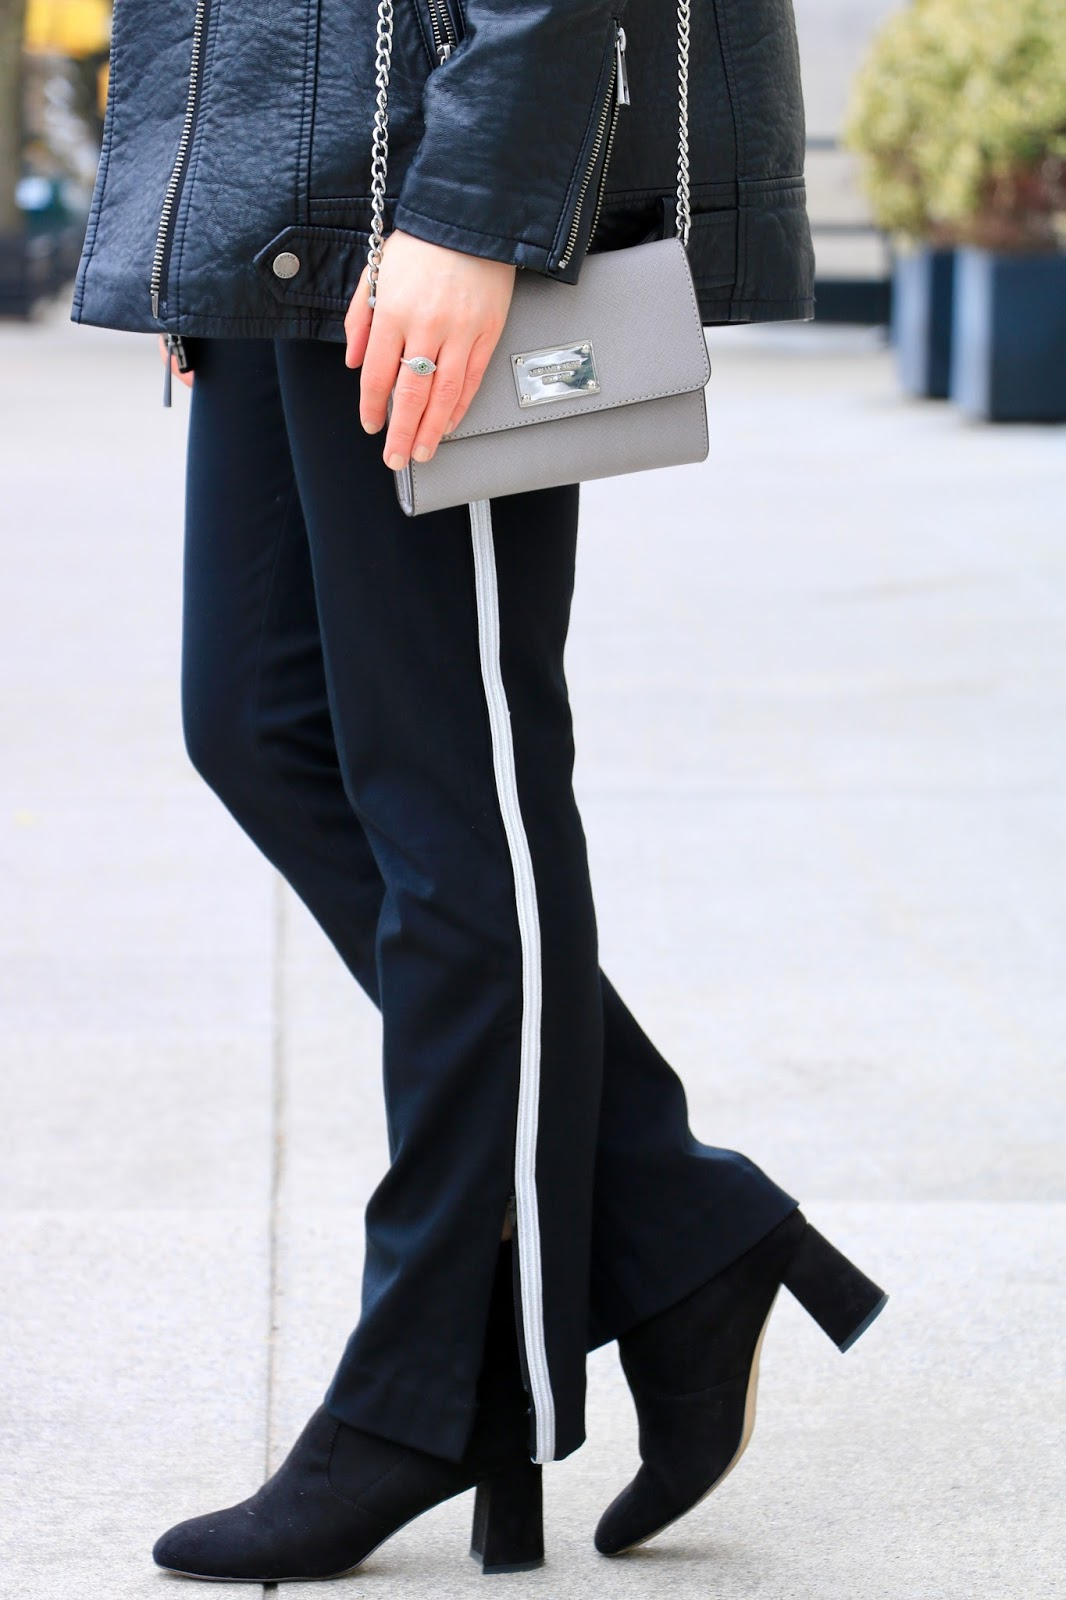 Nyc fashion blogger Kathleen Harper wearing stylish track pants from Ann Taylor